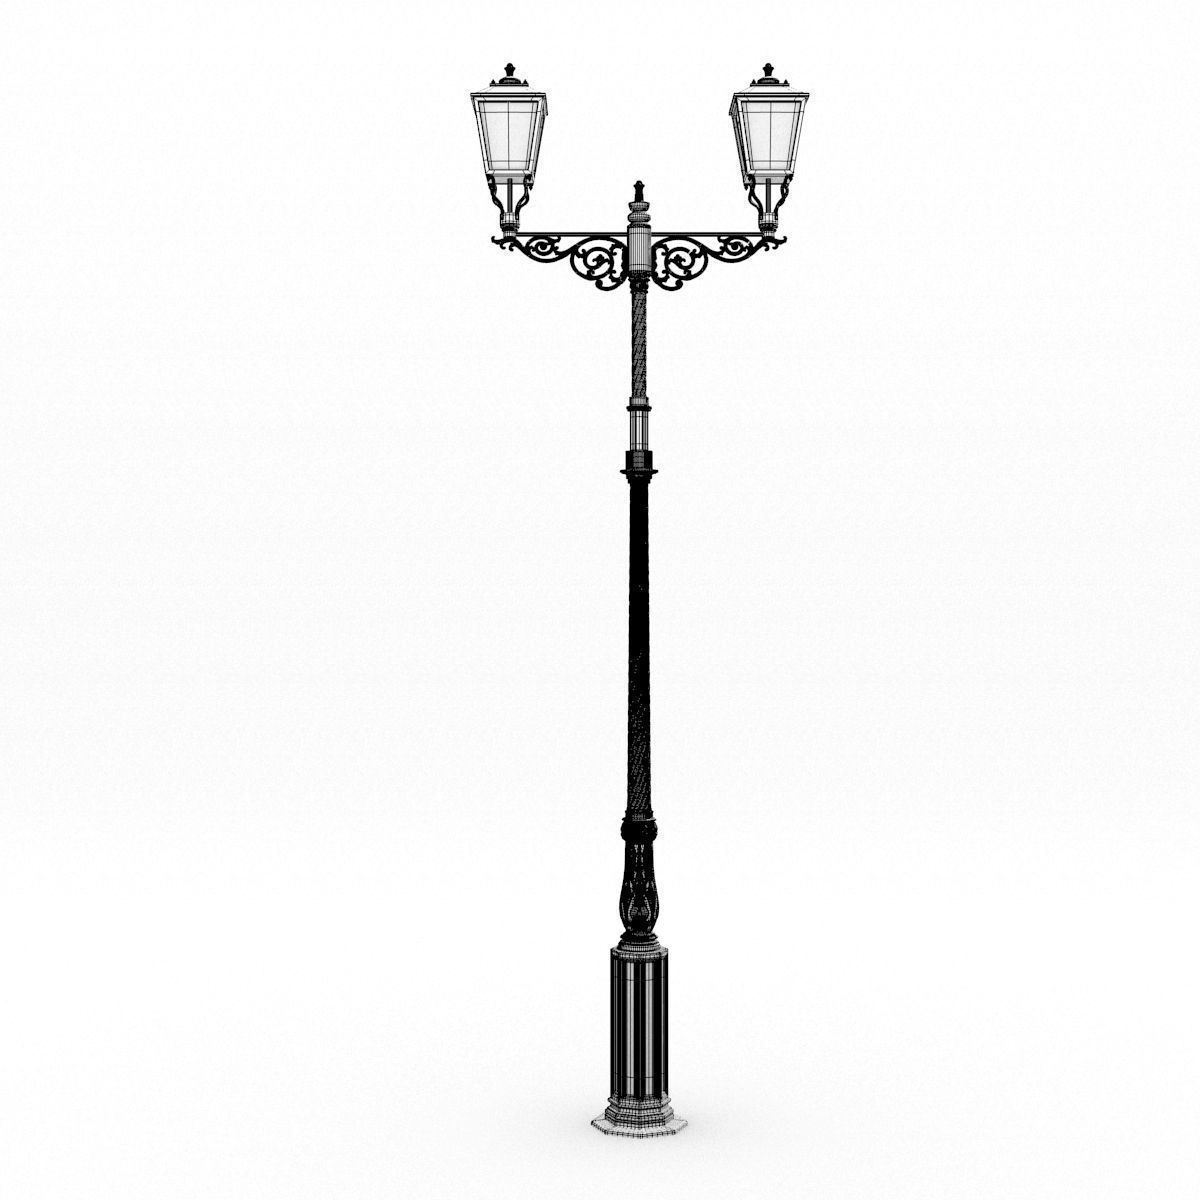 Cast Iron Street Lamp 3D model   CGTrader for Classic Street Lamp  575cpg